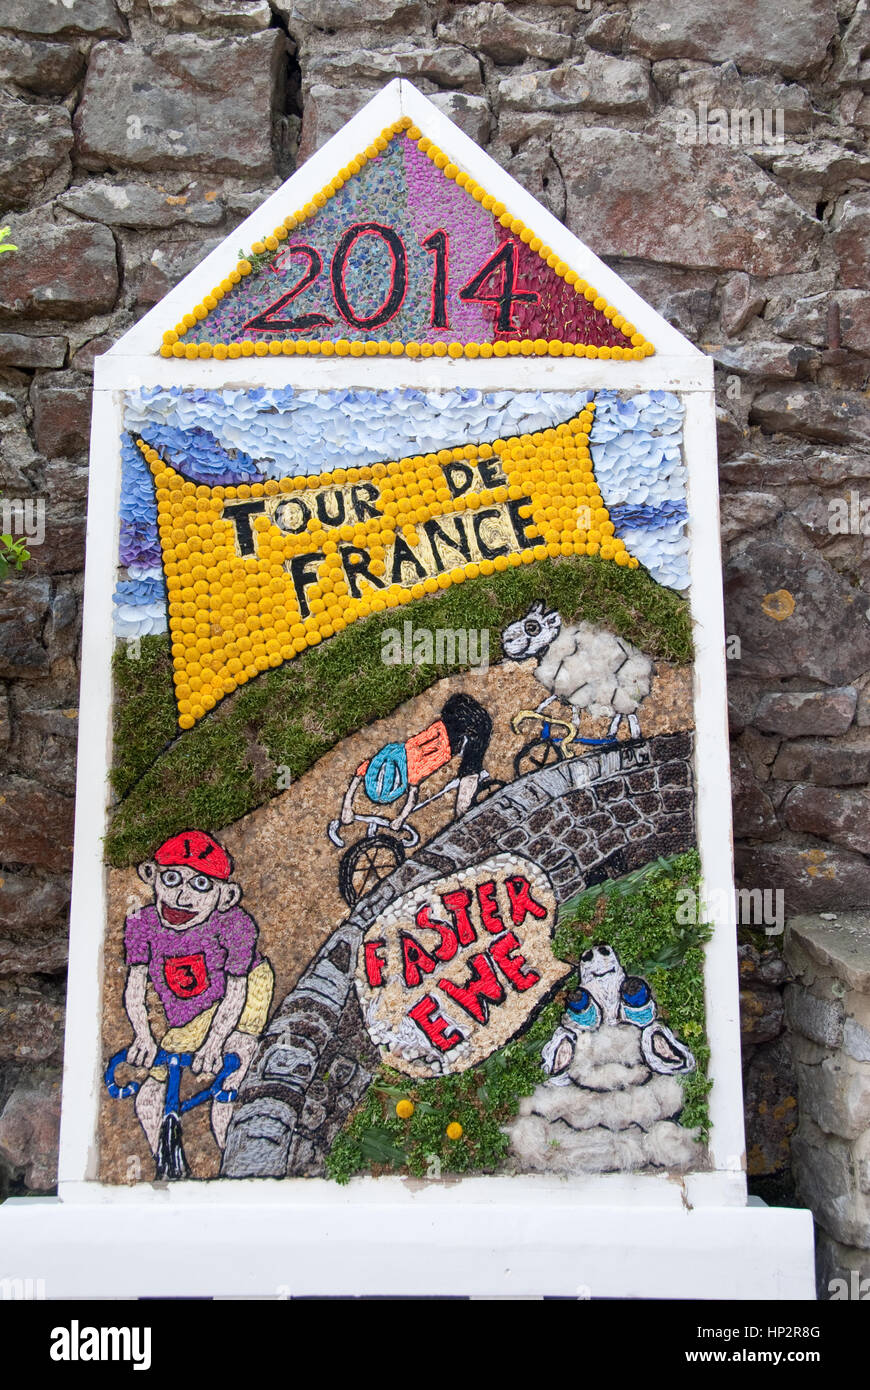 Derbyshire, UK - July 20 2014 - Well dressing celebrating Le Tour de France in Yorkshire on 20 July at Little Longstone, - Stock Image